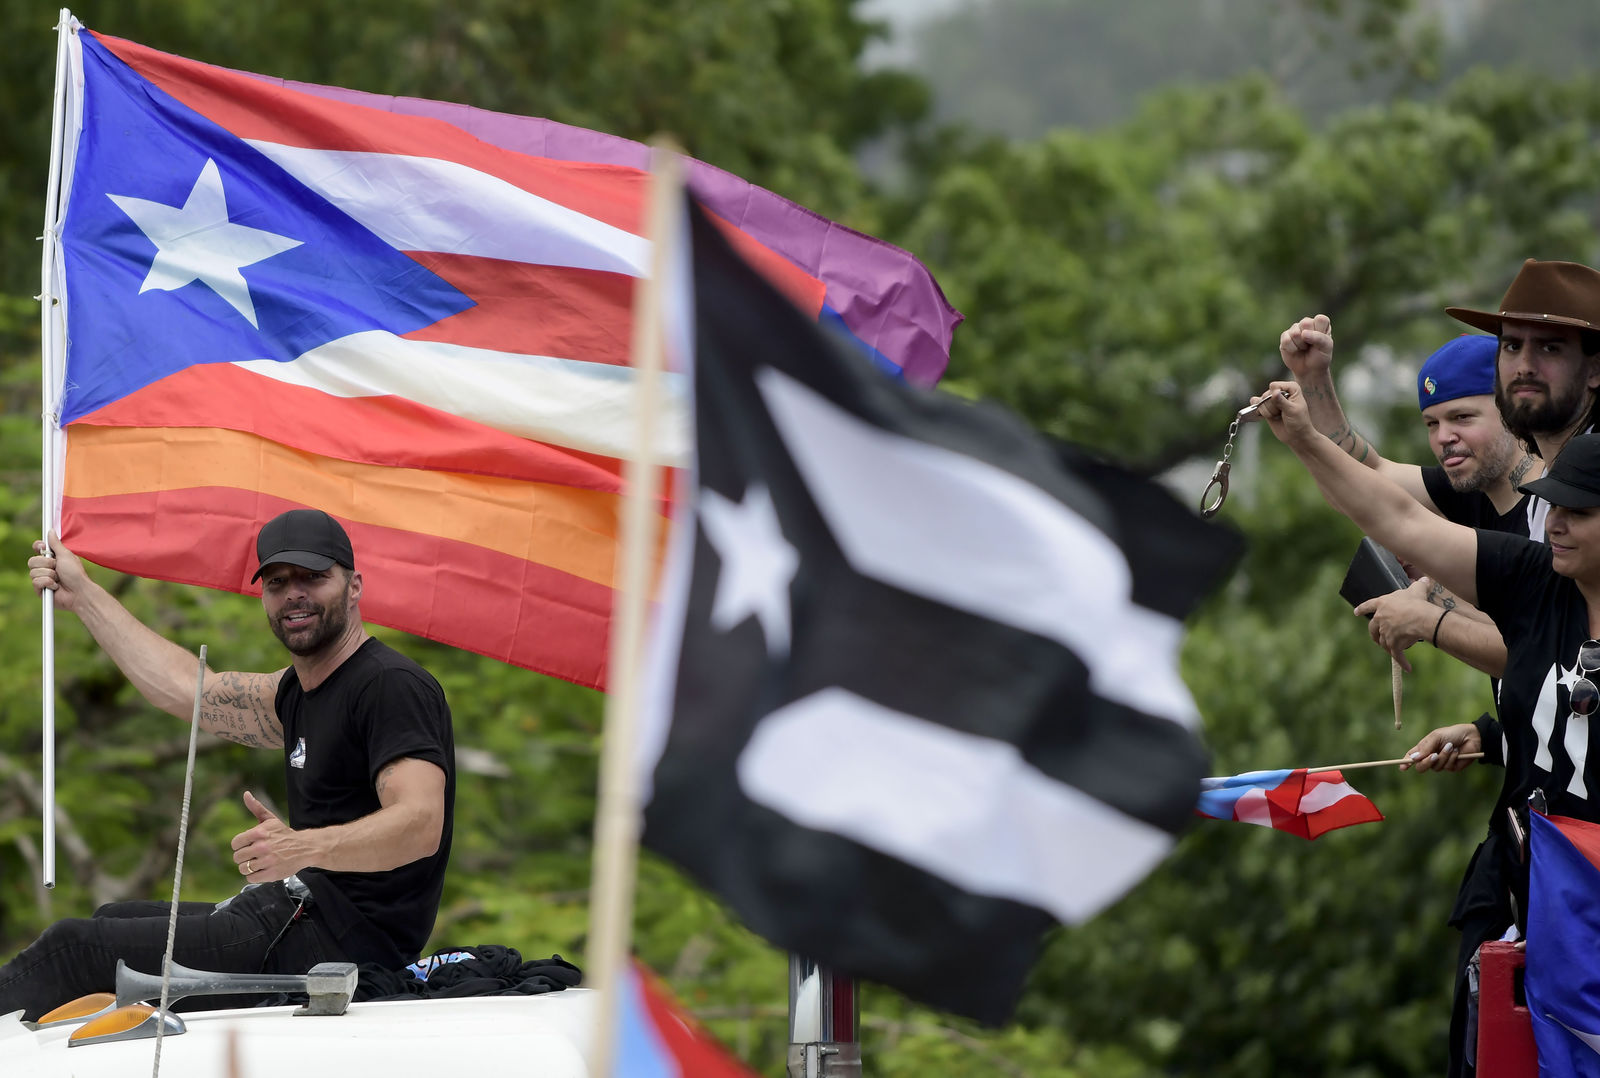 Puerto Rican singer Ricky Martin holds a Puerto Rico flag as he participates in a protest demanding the resignation of governor Ricardo Rossello, in San Juan, Puerto Rico, Friday, July 19, 2019.{ } (AP Photo/Carlos Giusti)